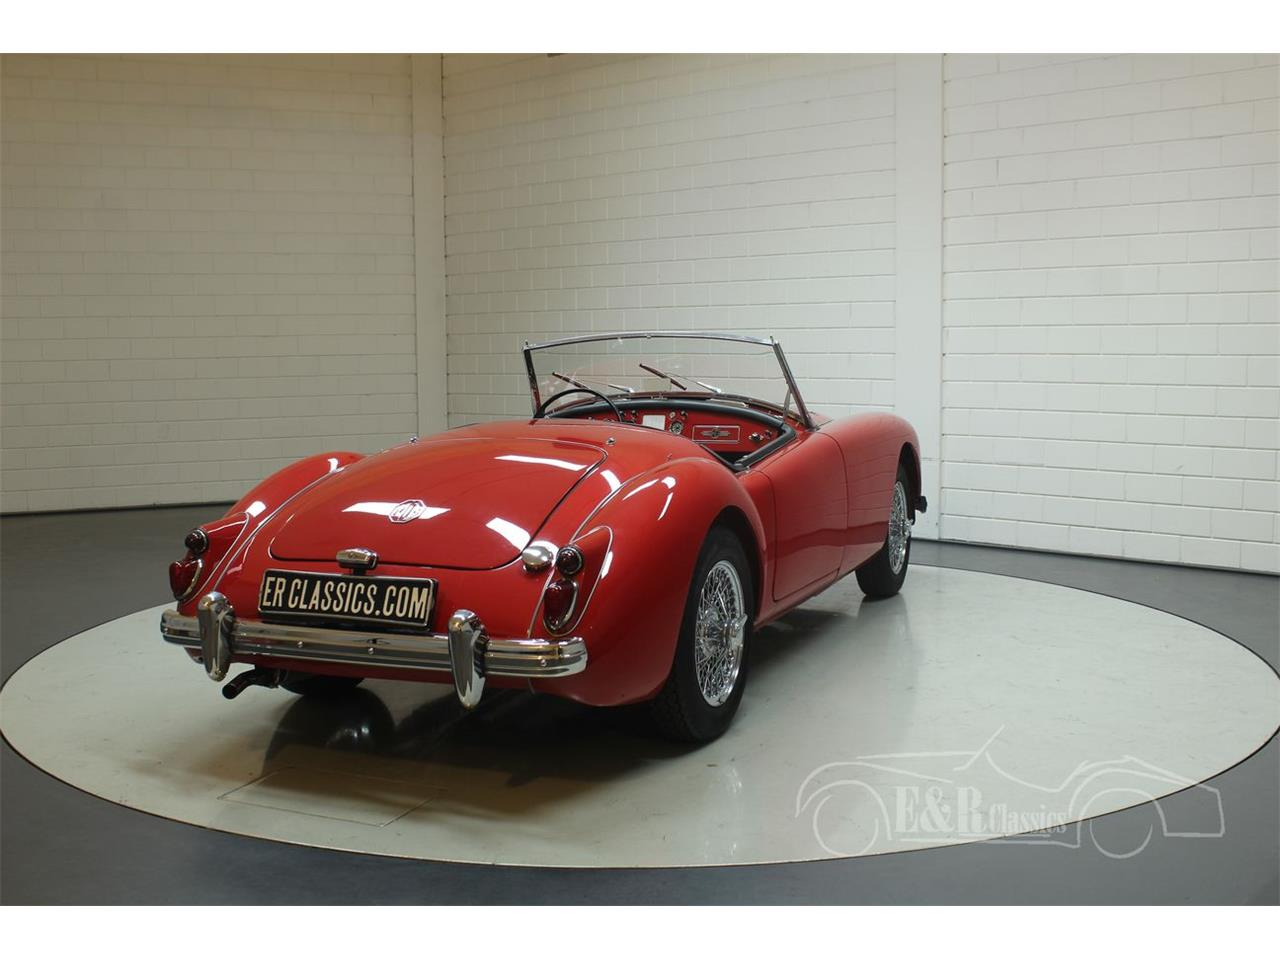 Large Picture of Classic 1959 MG MGA located in Waalwijk - Keine Angabe - - PGST